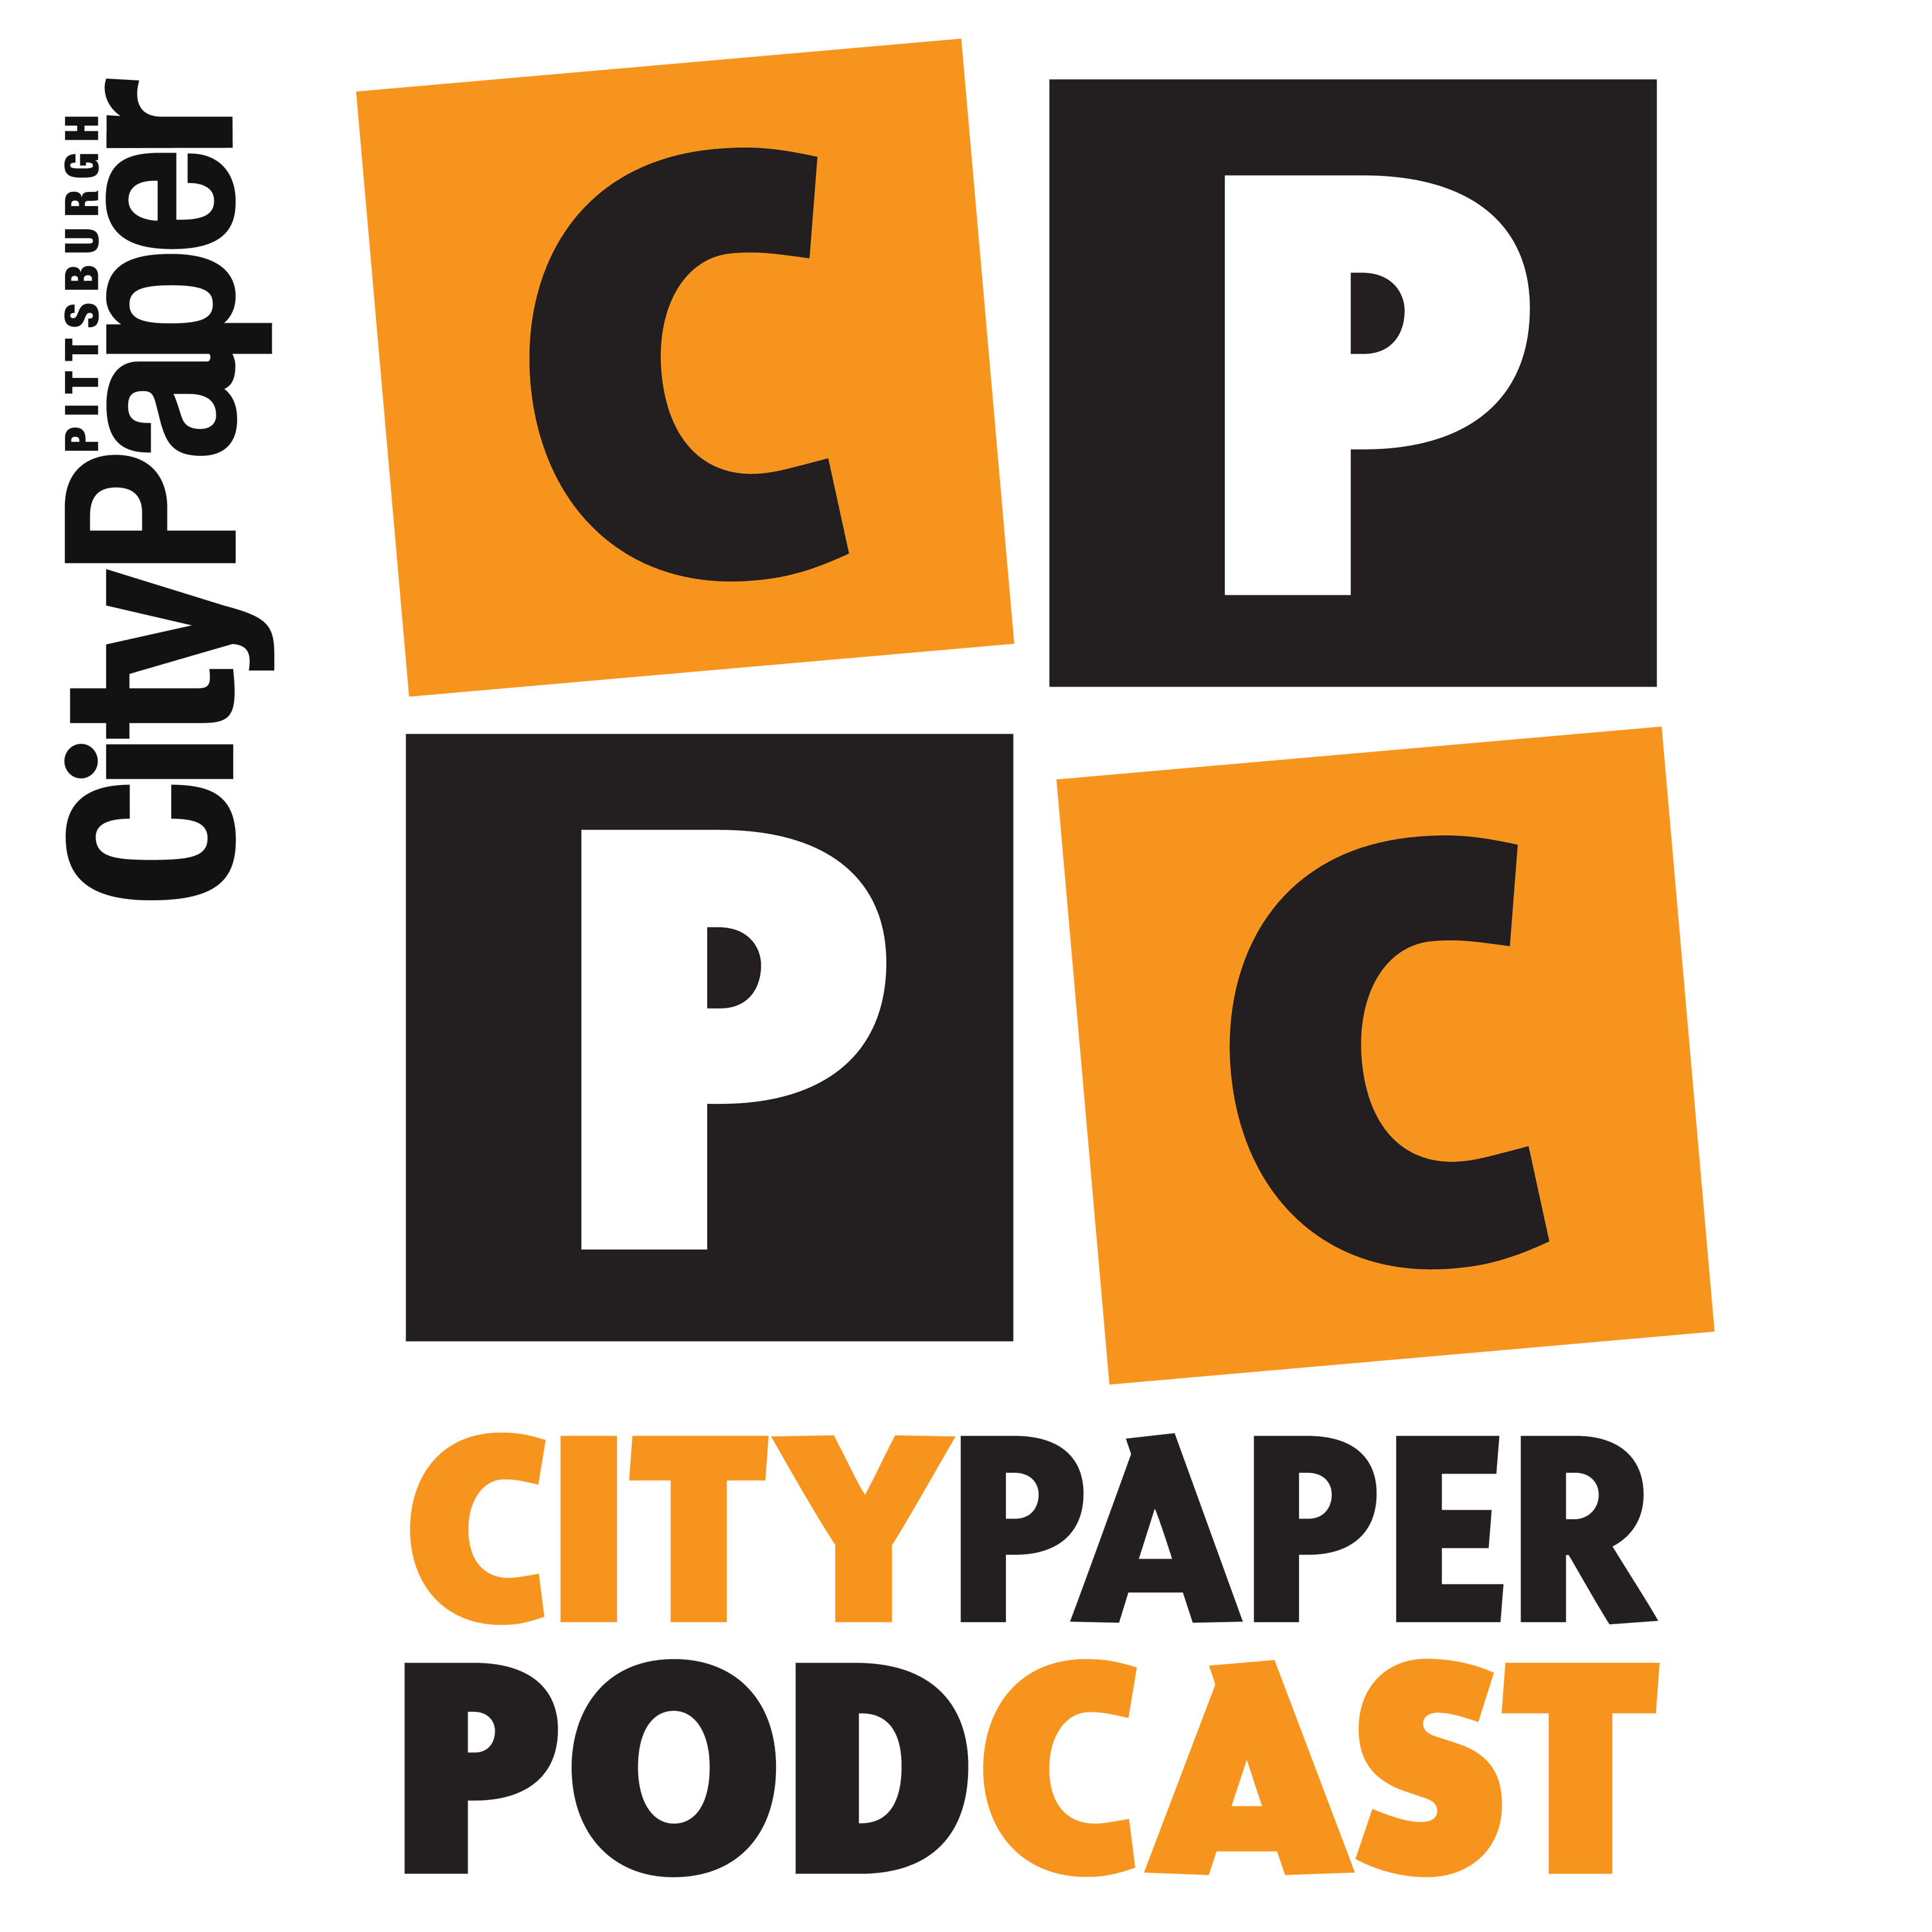 City Paper Podcast